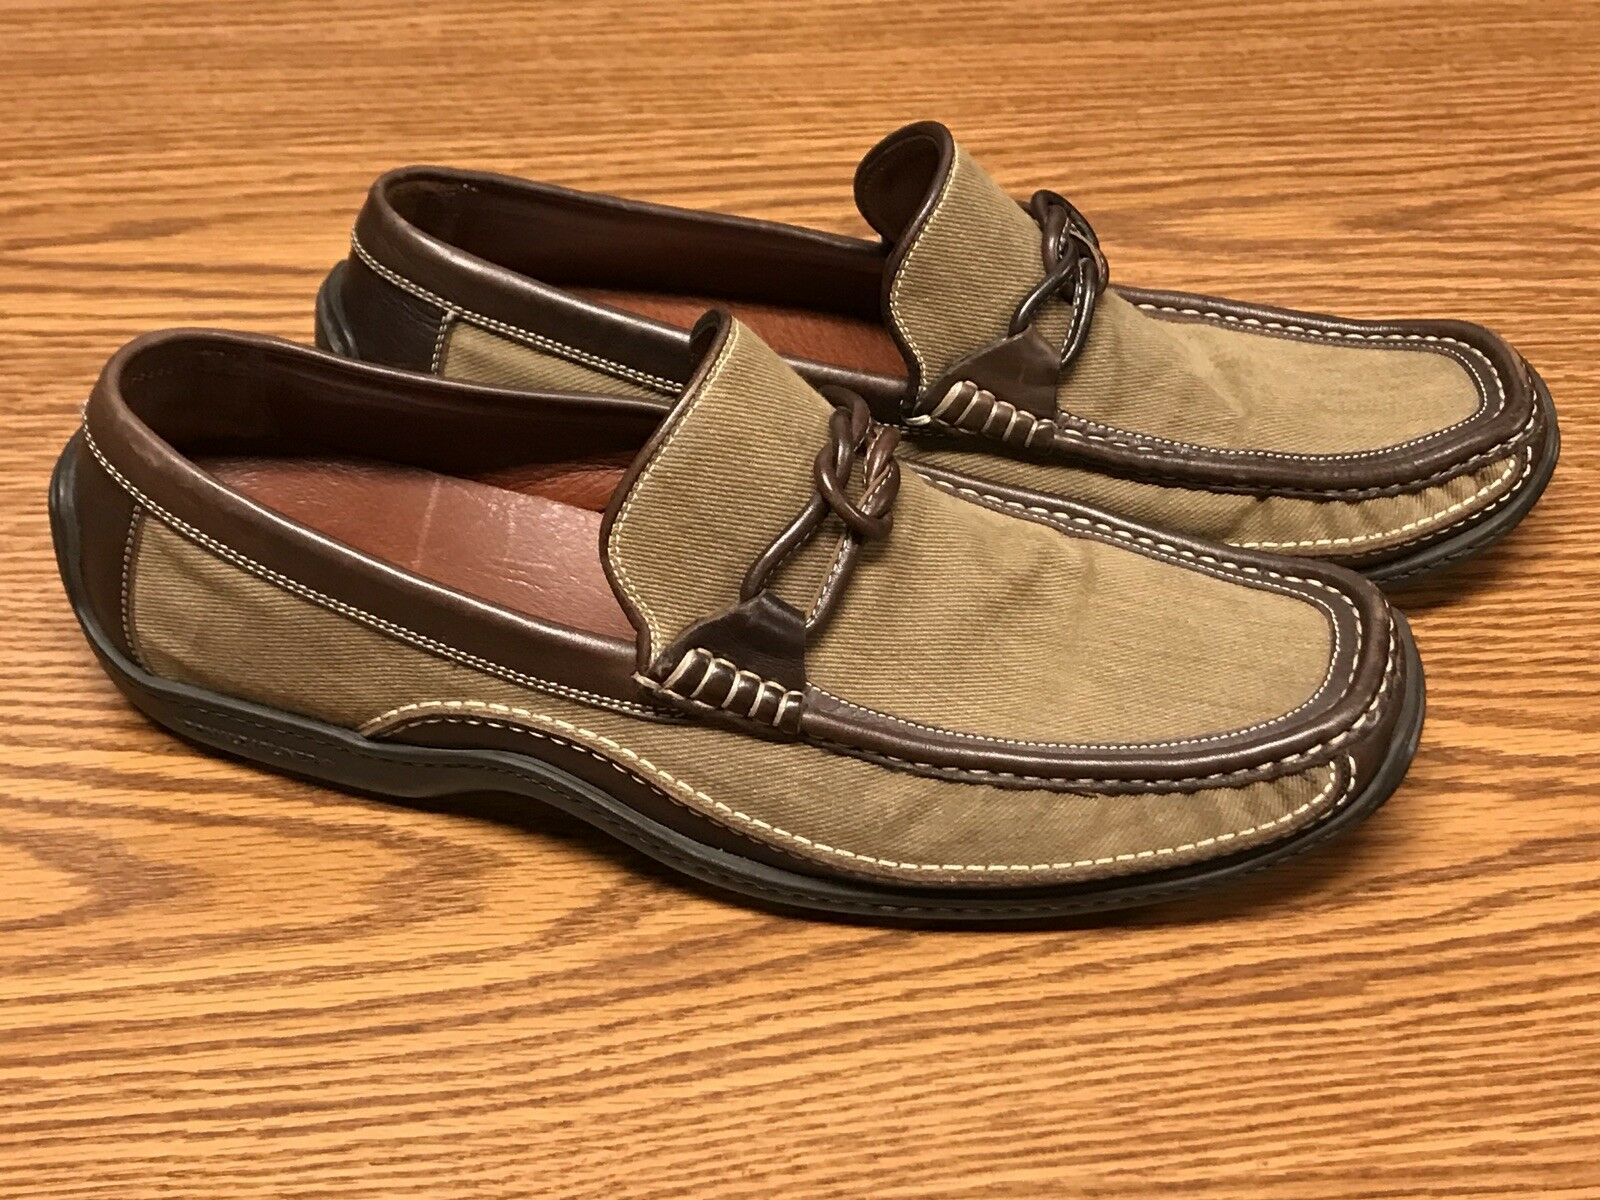 Donald J Pliner Ettore Mens Brown Leather Half Knot Strap Loafers Moccasin Sz 12